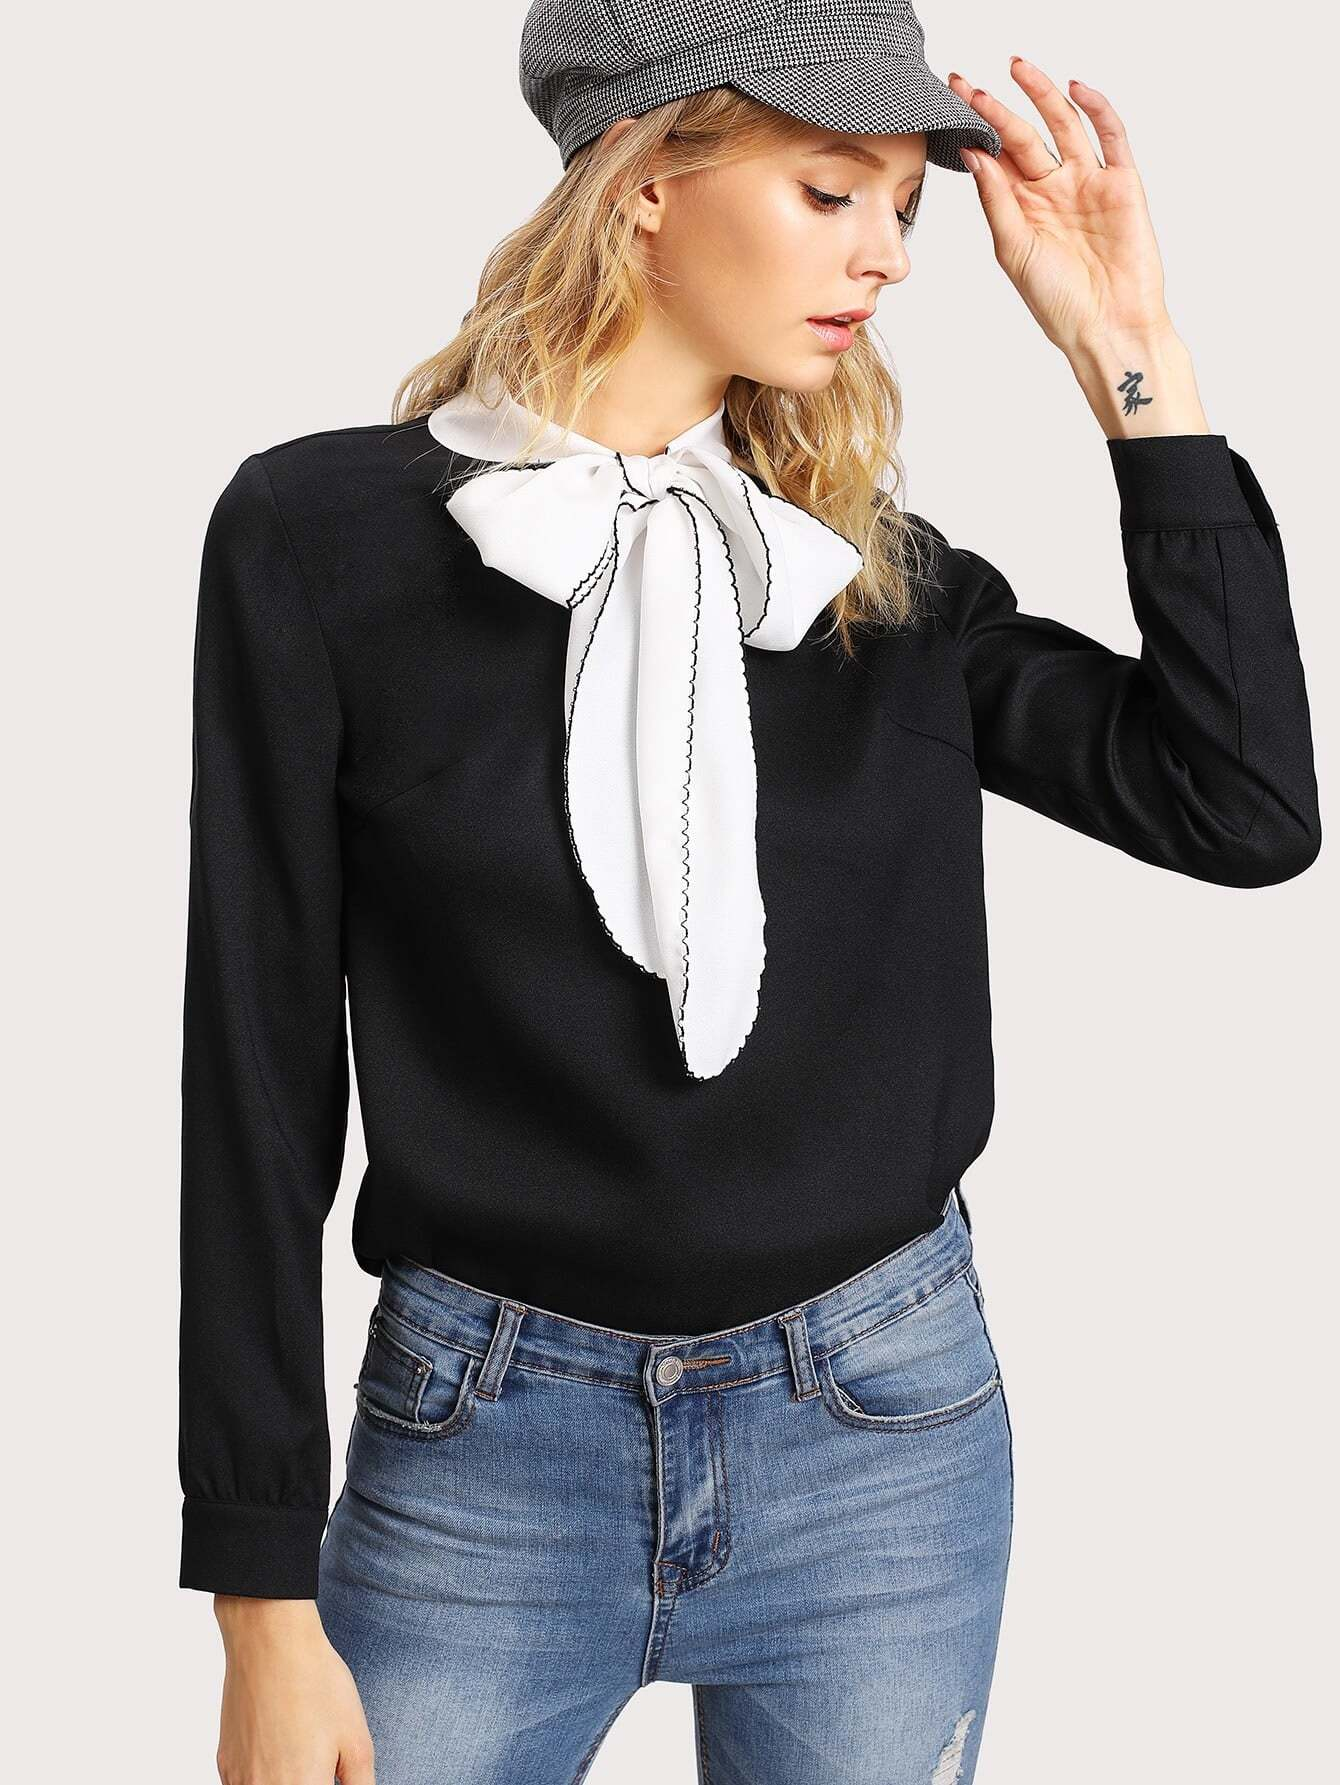 Contrast Tied Neck Blouse stylish wavy stripe pattern voile bib scarf for women